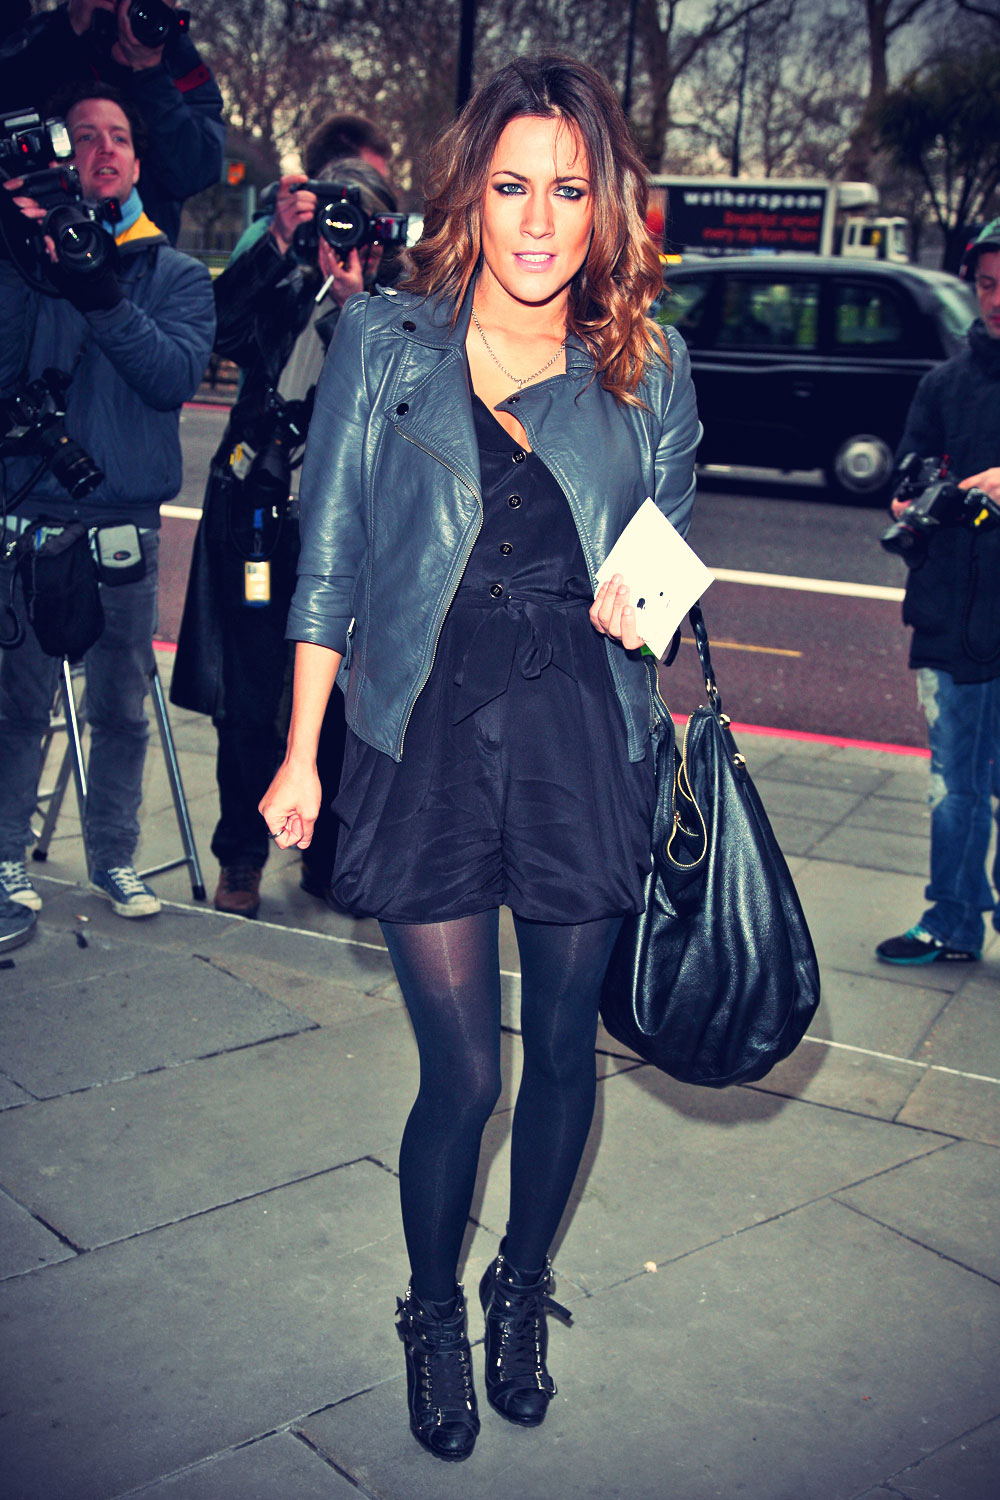 Caroline Flack attends 2010 Tric Awards